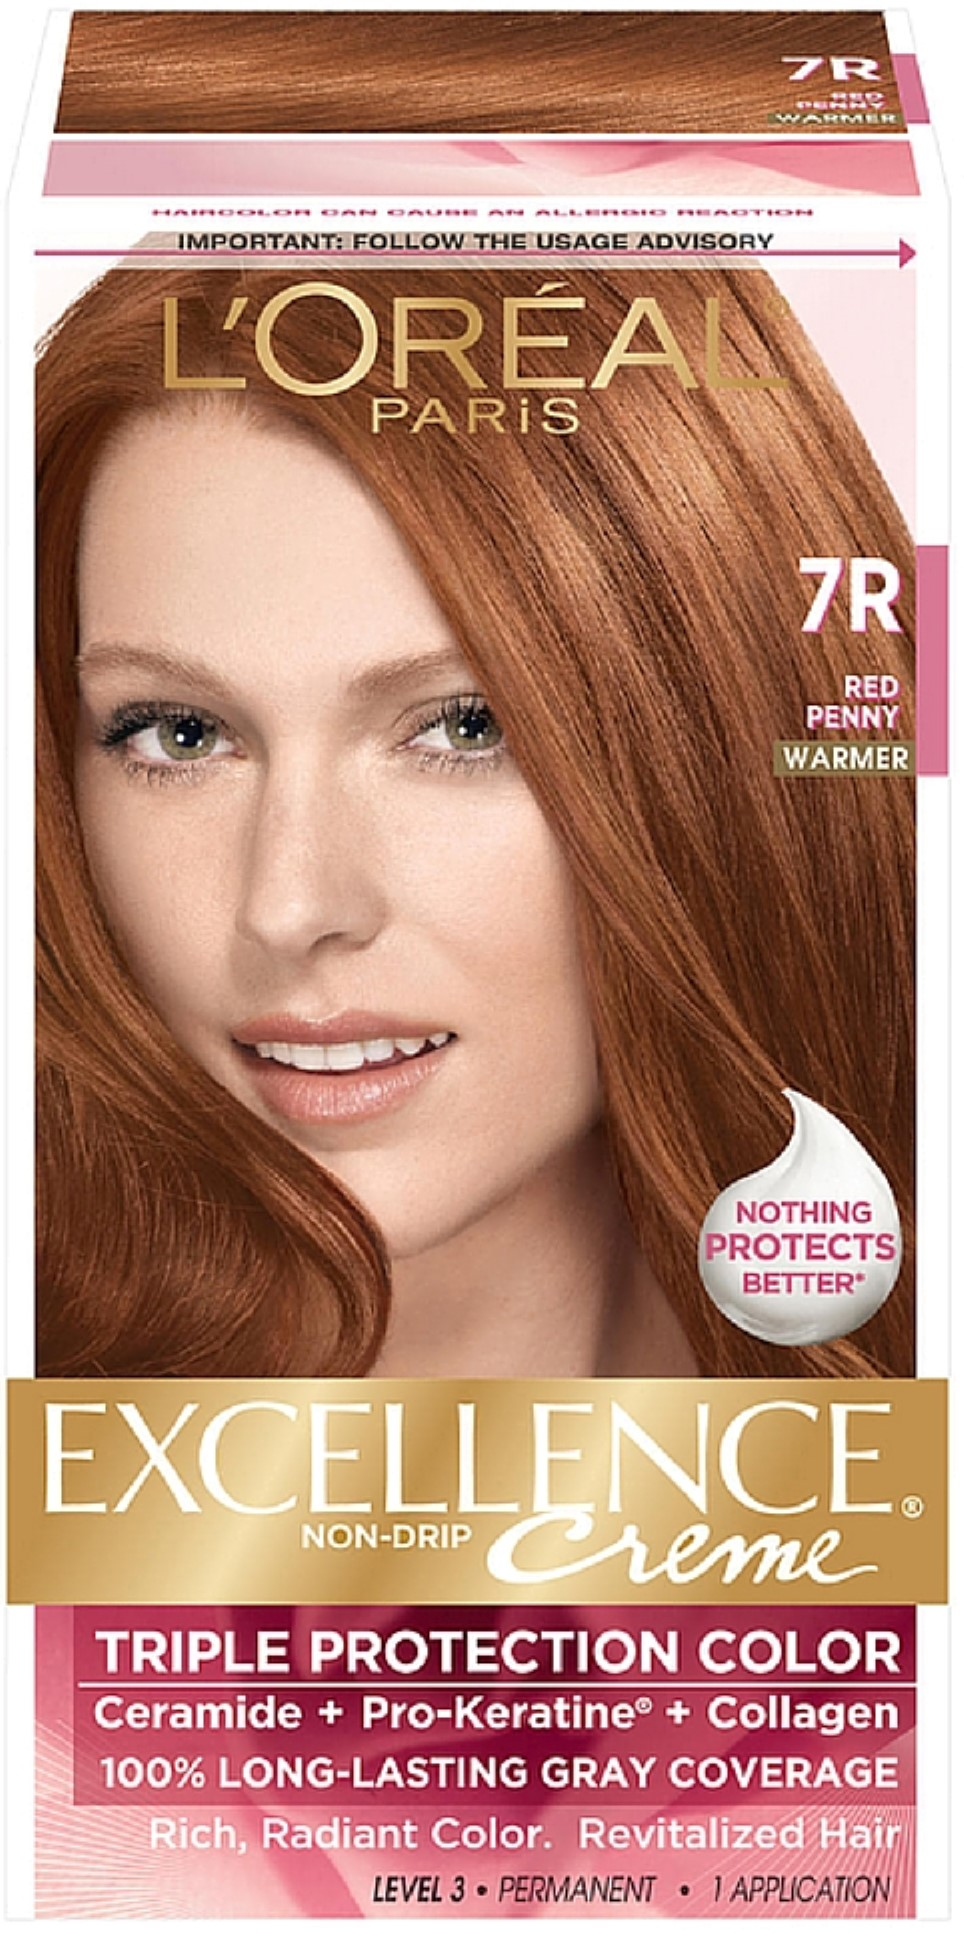 Loreal Paris Excellence Non Drip Creme Hair Color Red Penny